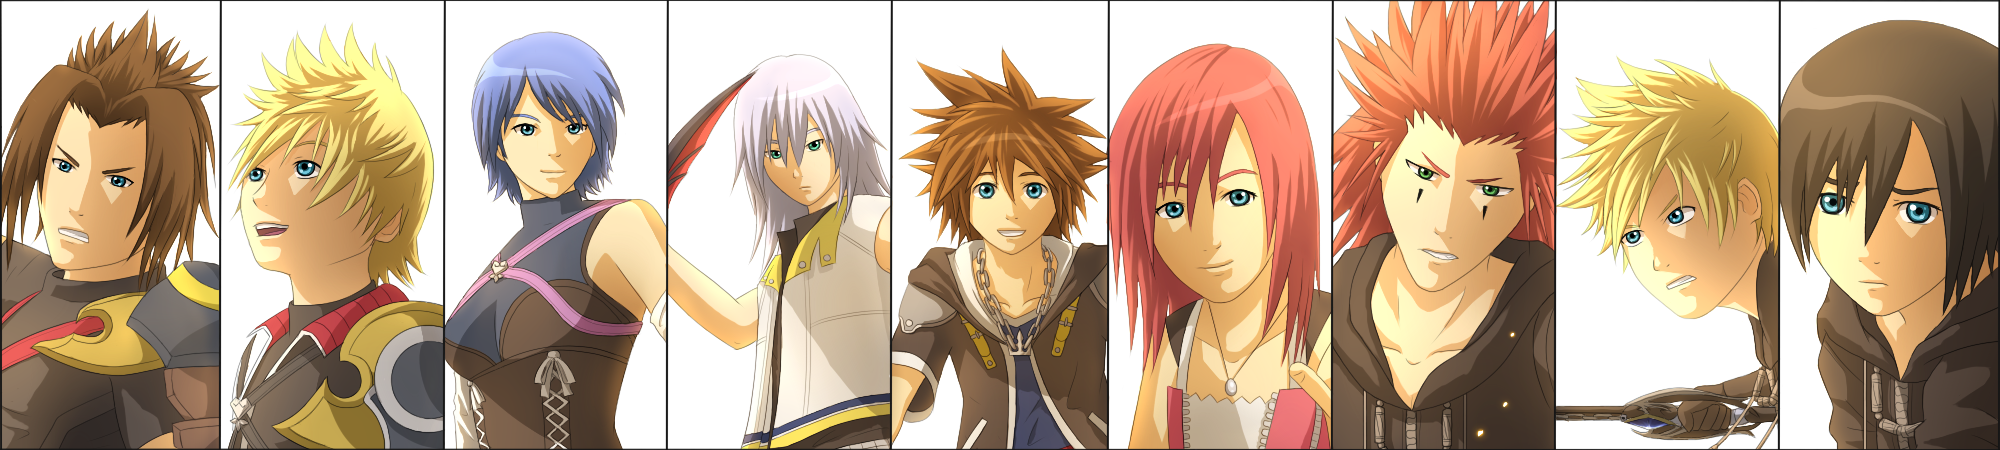 Kingdom Hearts by Chiakiro